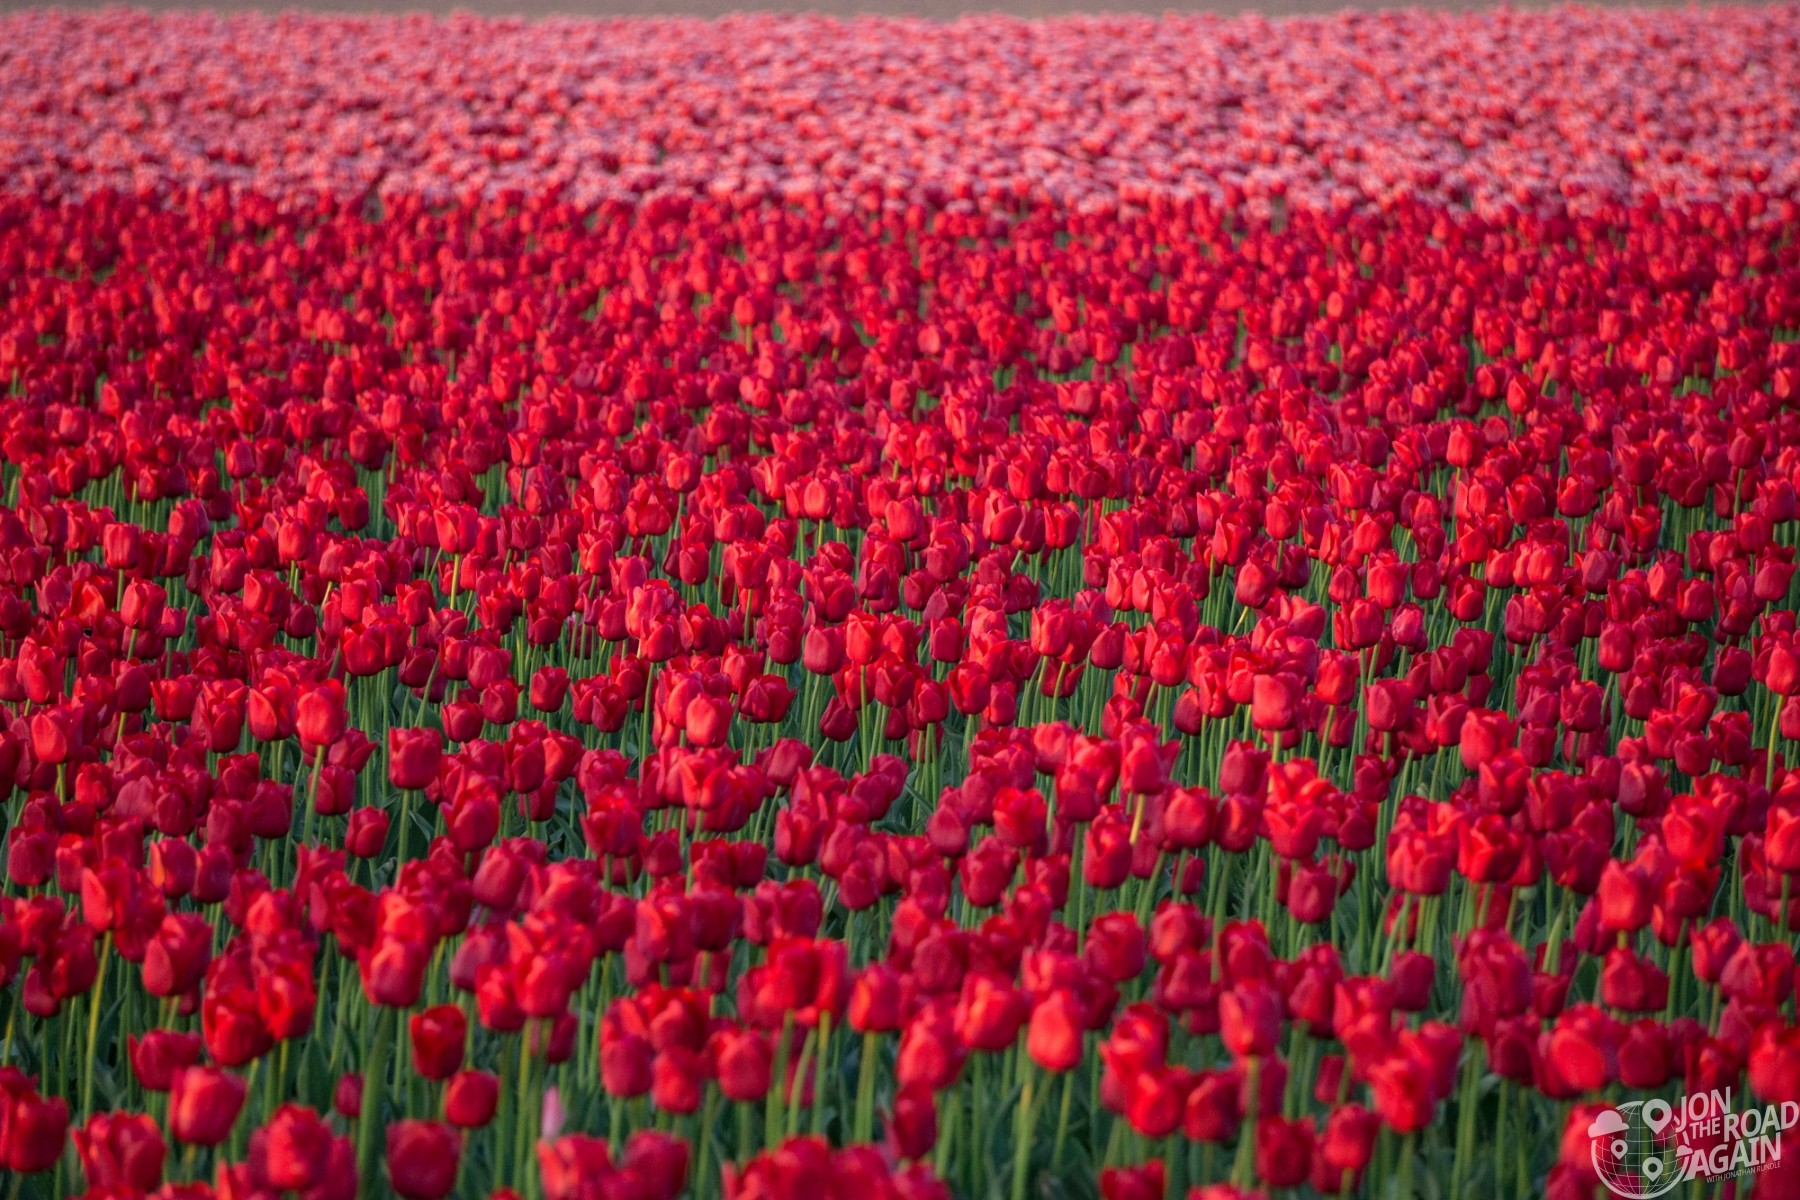 Skagit Valley Tulip Festival fields